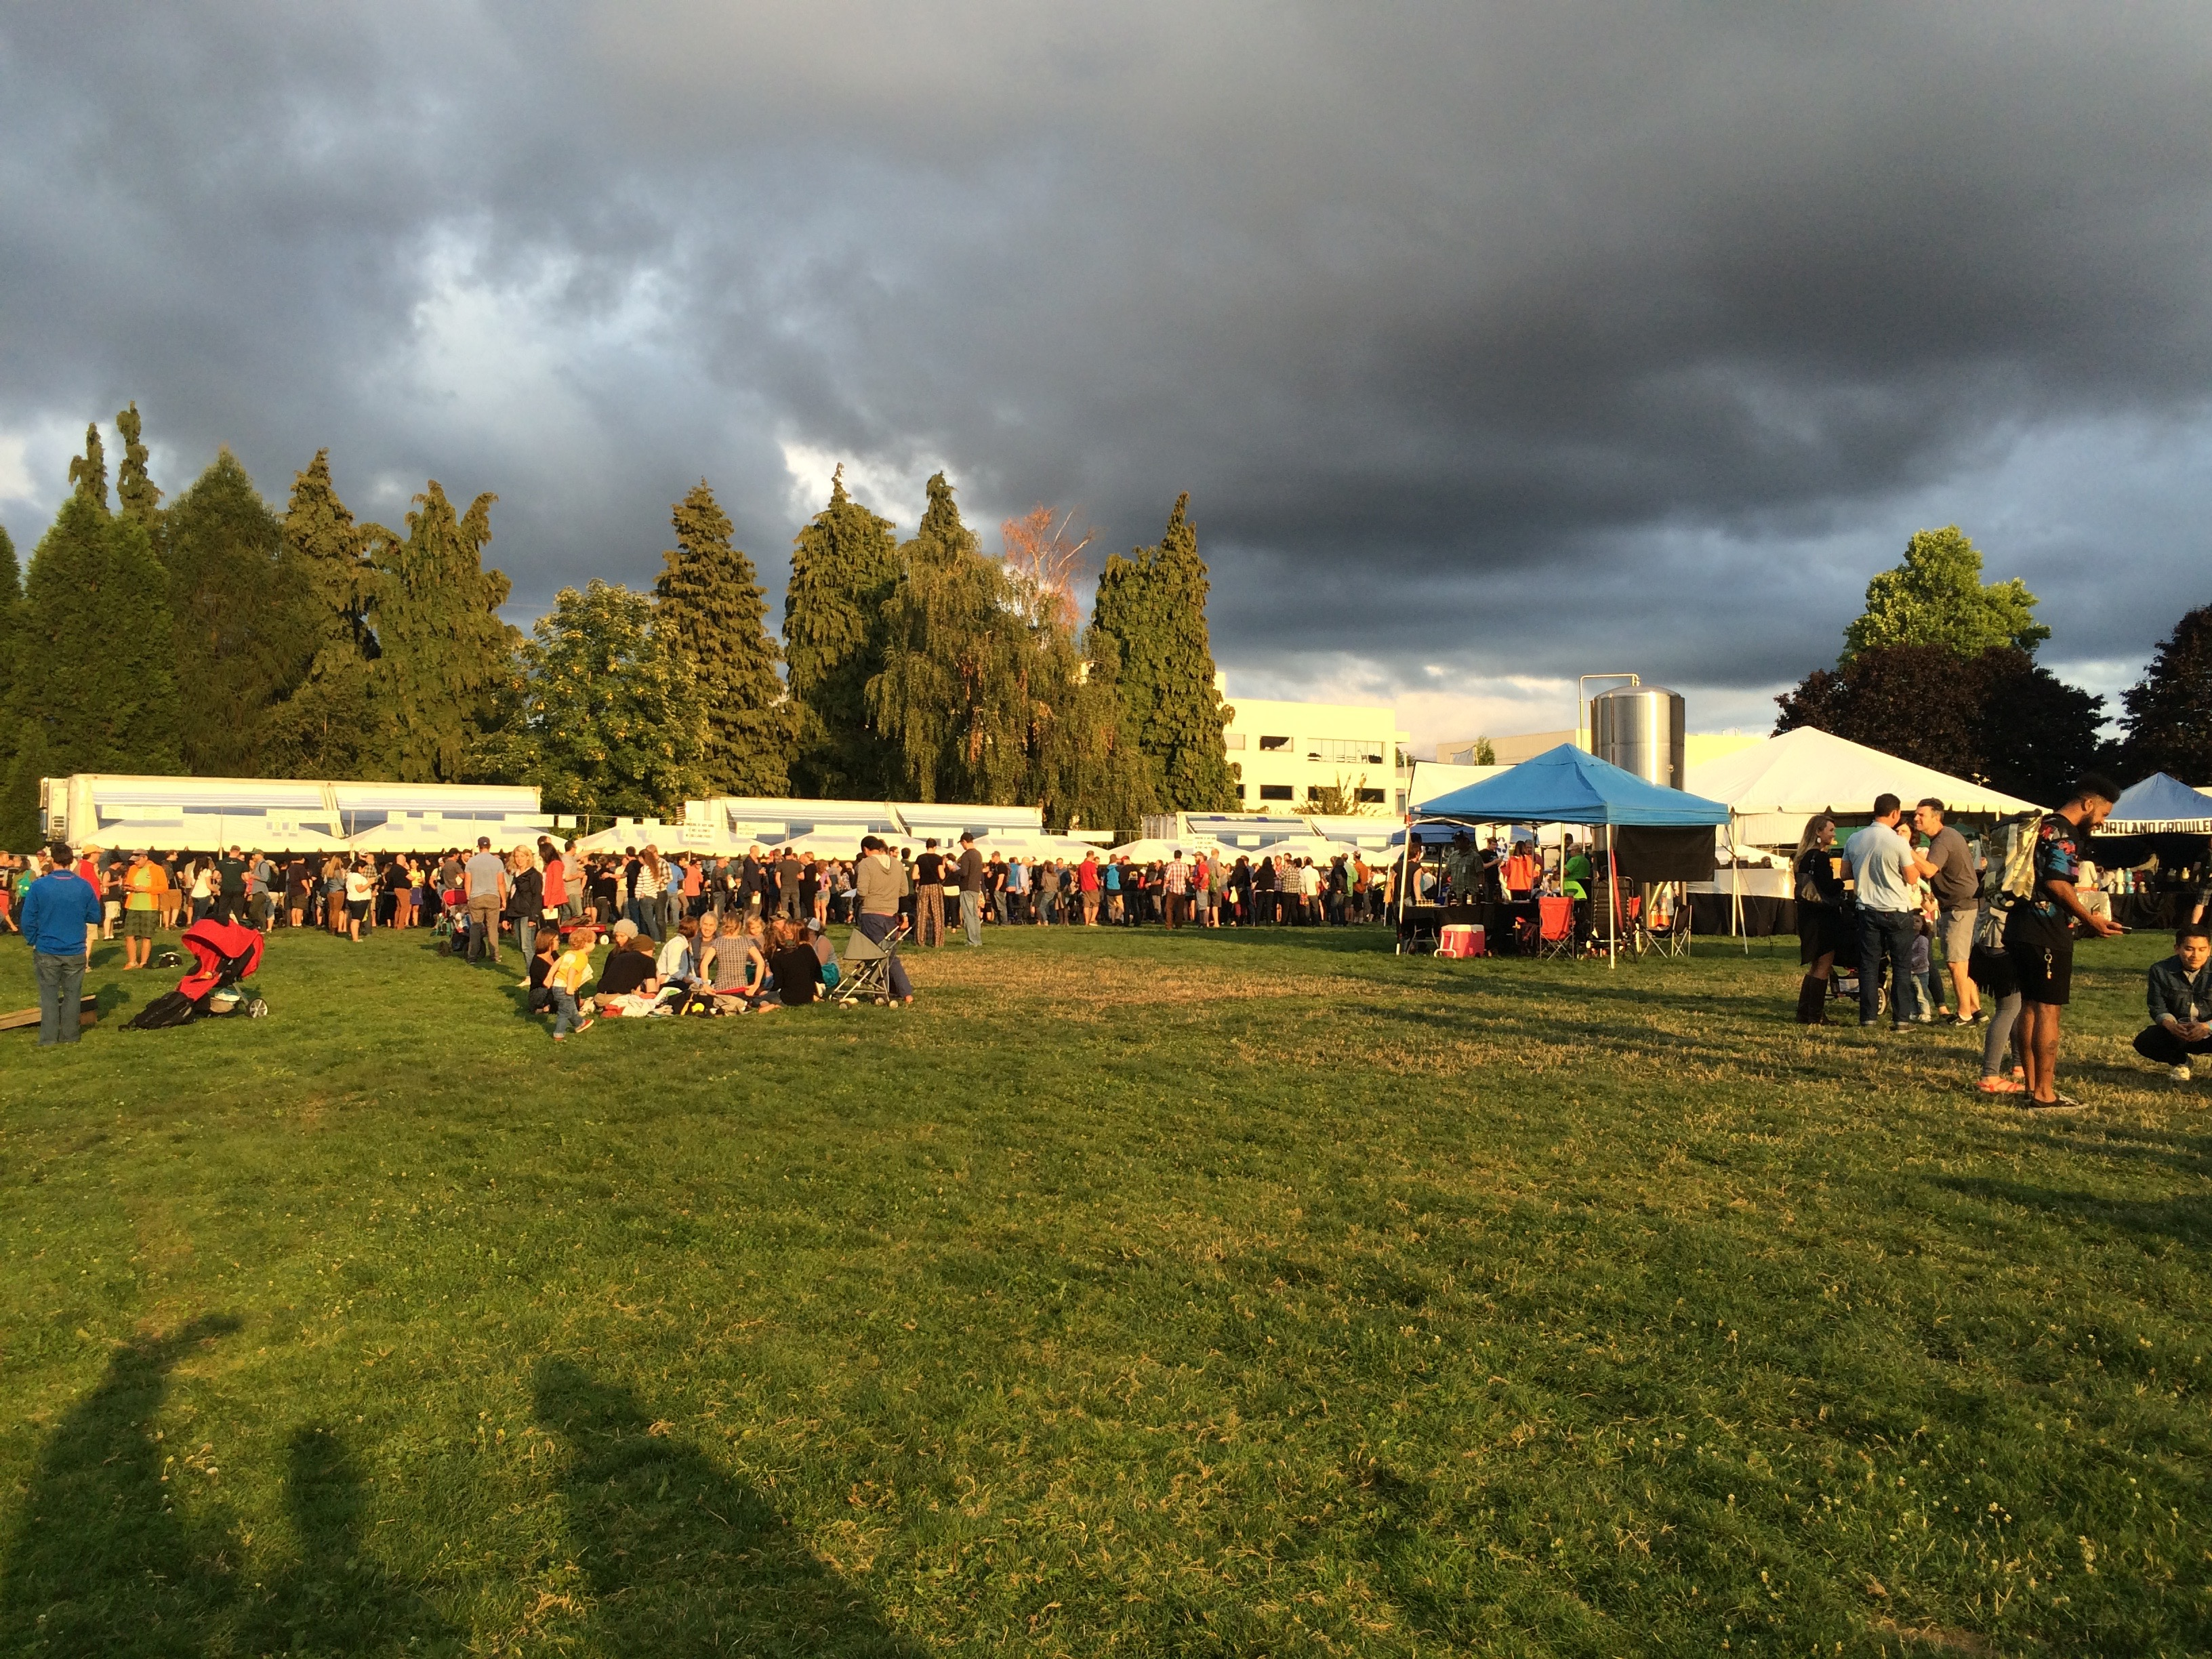 The sun peeks through some ominous clouds during the 2015 Organic Beer Fest in Portland, Oregon.